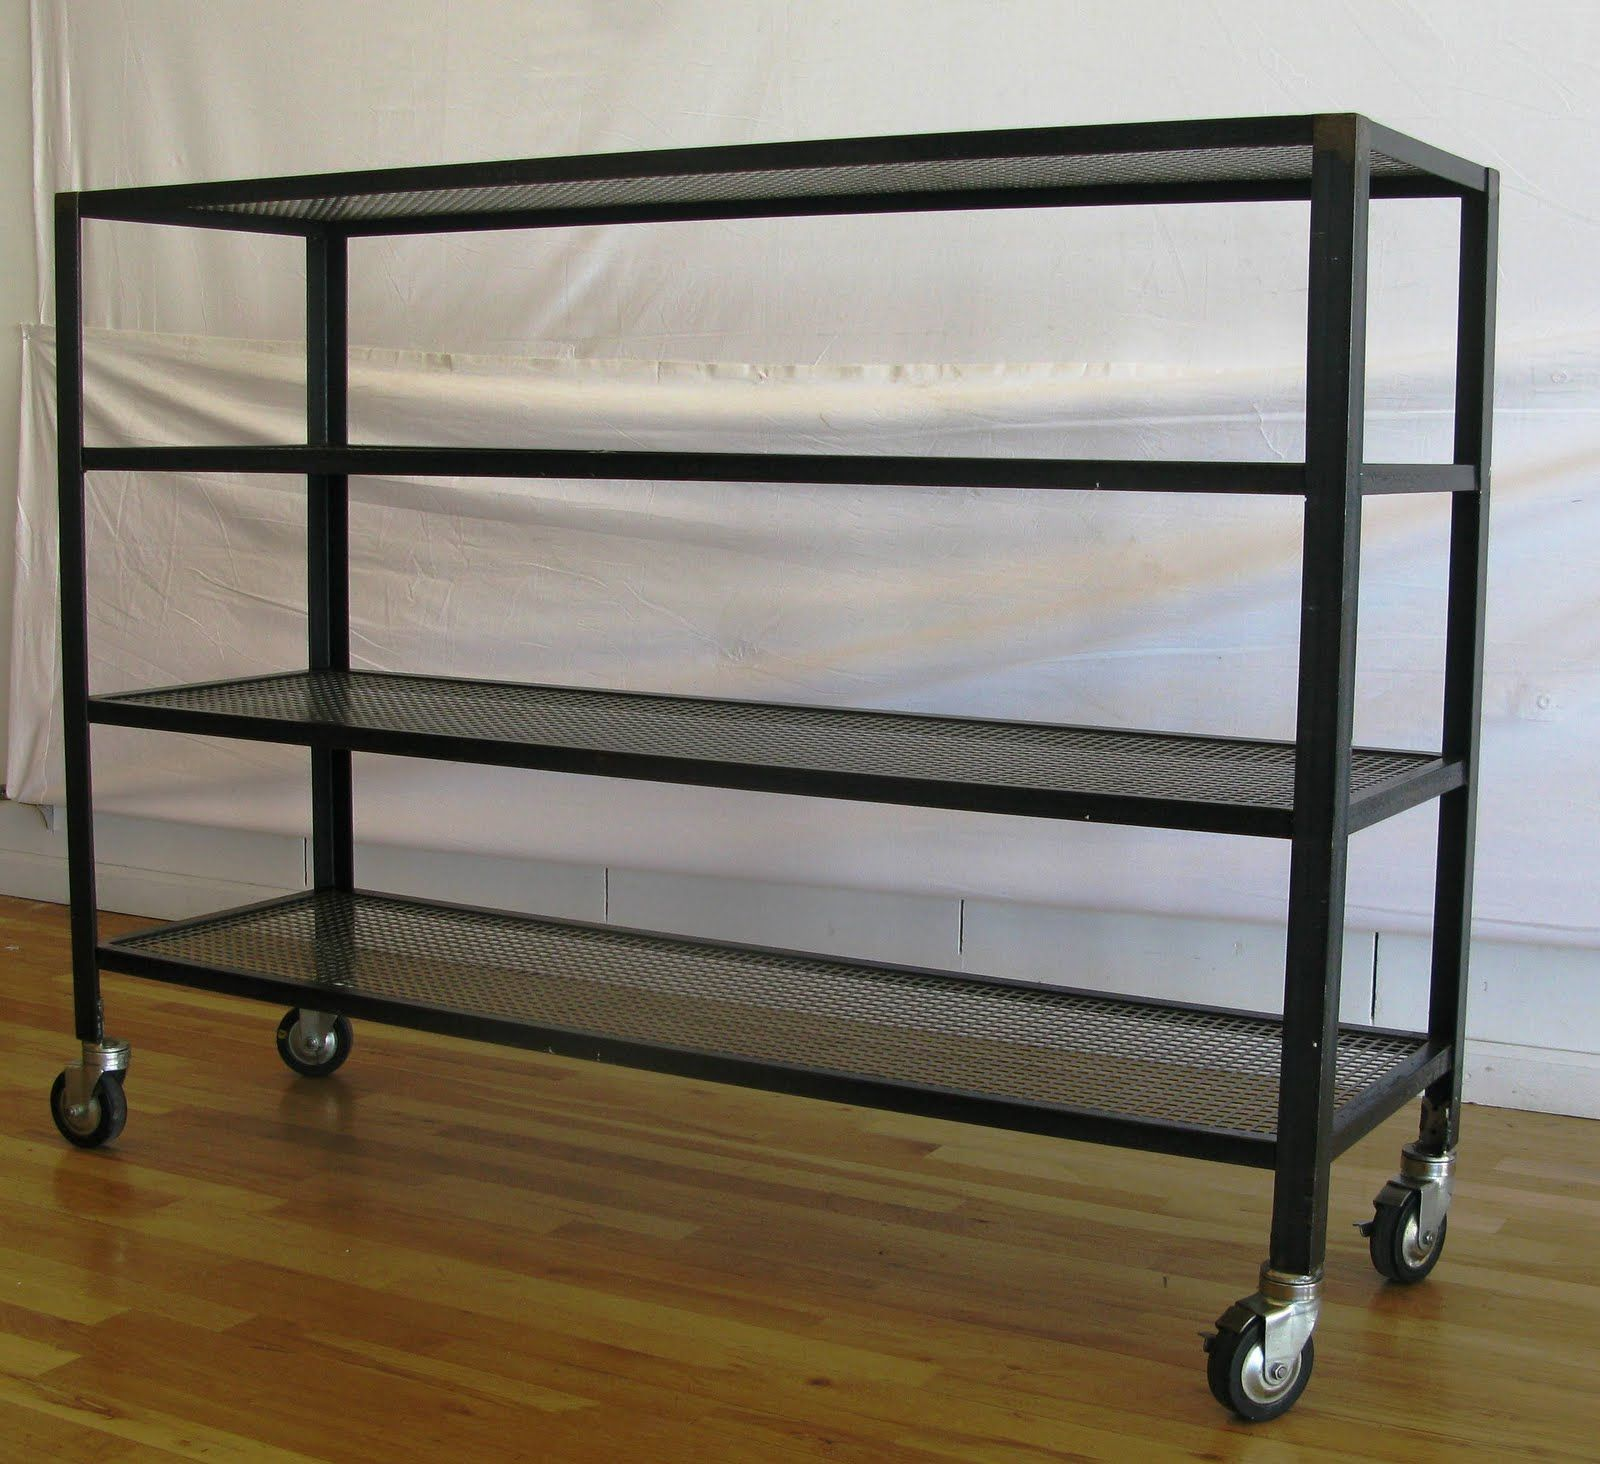 Industrial metal shelves on casters for basement breezeway and garage